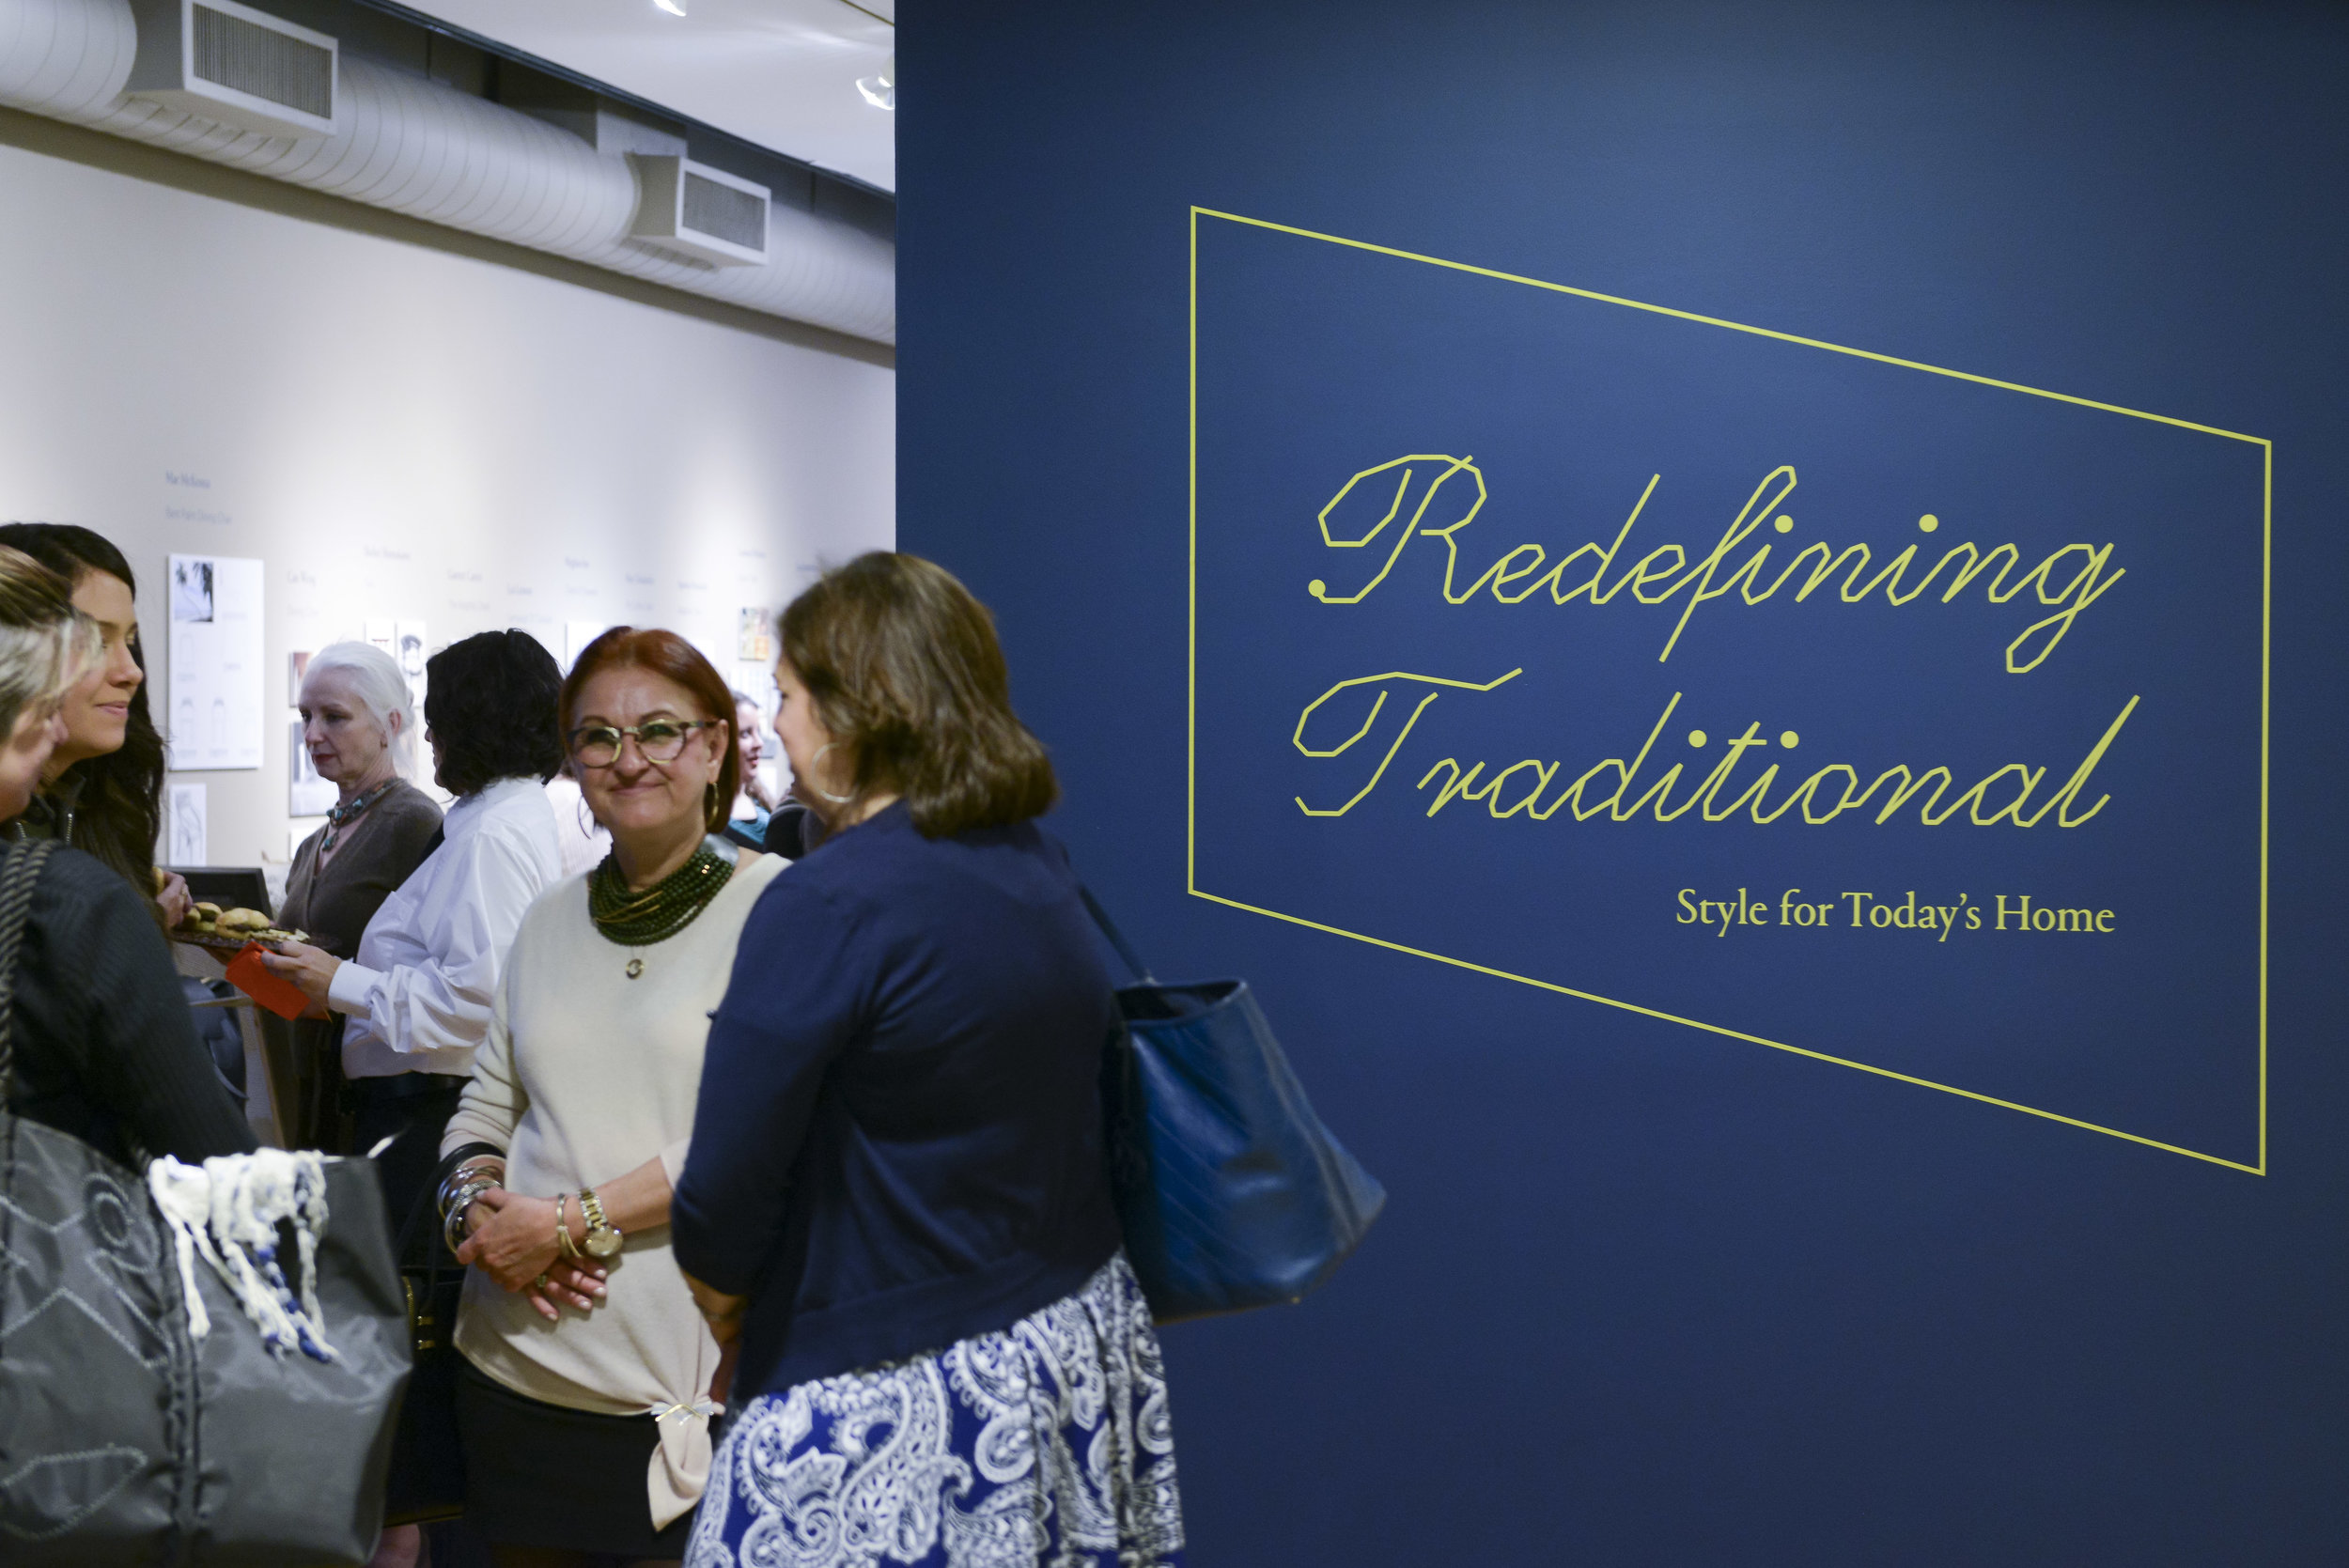 redefining-traditional-style-for-todays-home-opening-reception_33228509495_o.jpg